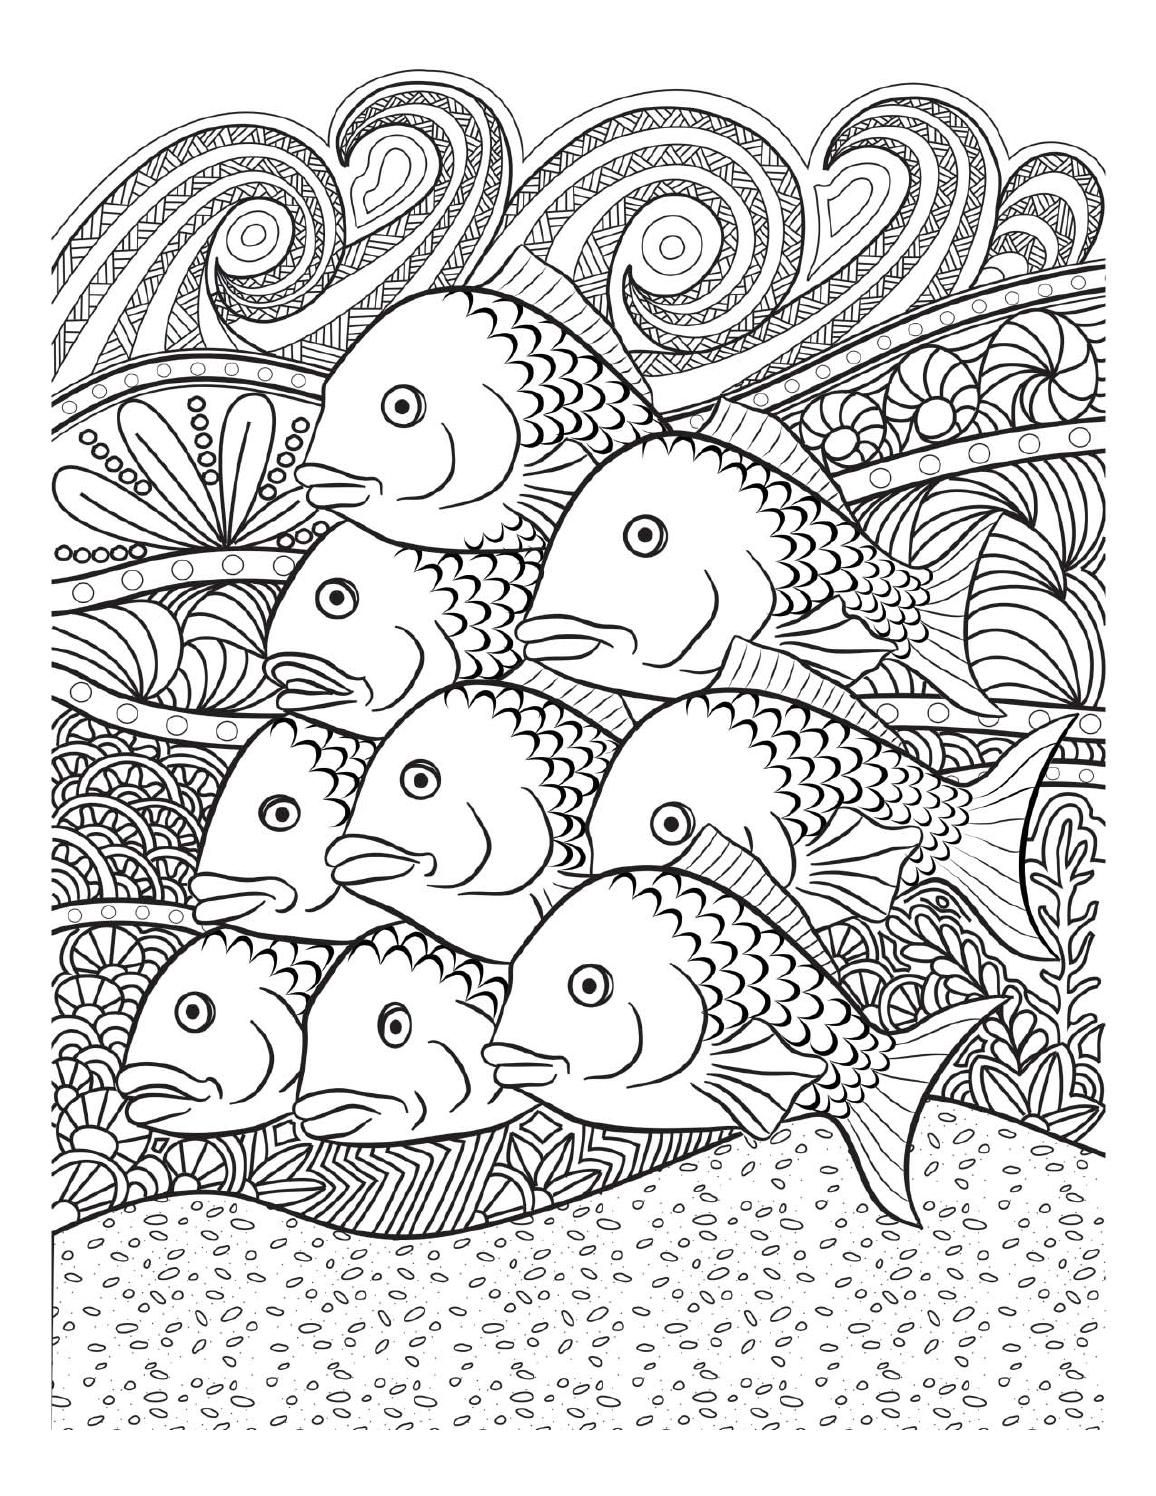 Stress relief coloring sheets free - Doodles Oceana Adult Coloring Book Twenty Creative And Stress Relieving